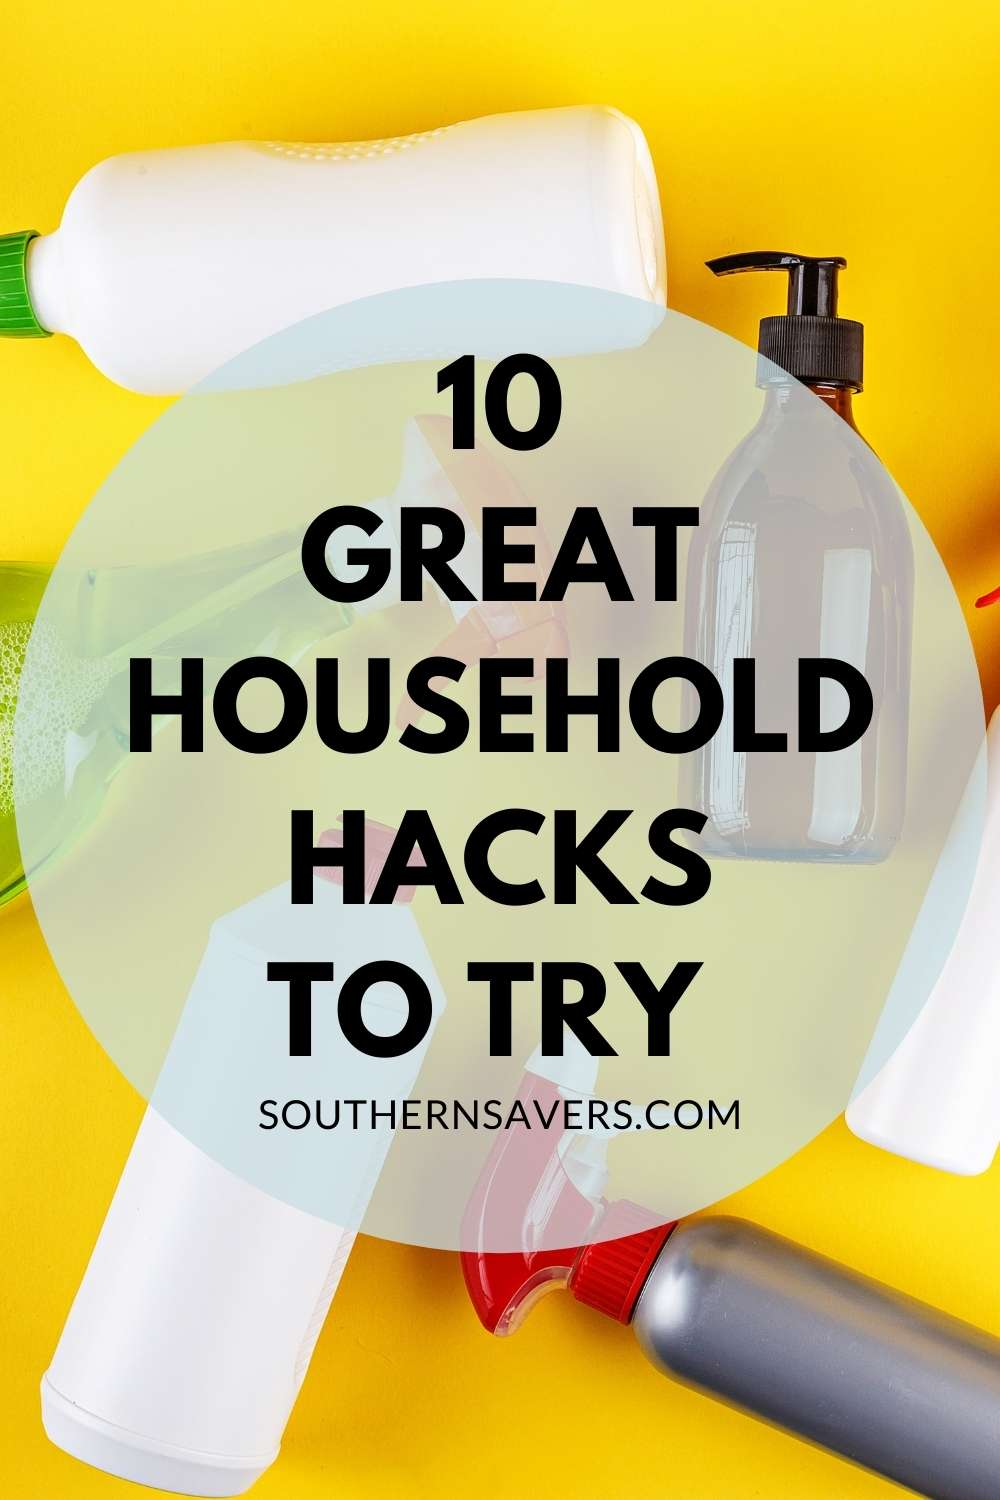 10 Great Household Hacks I've Learned This Year